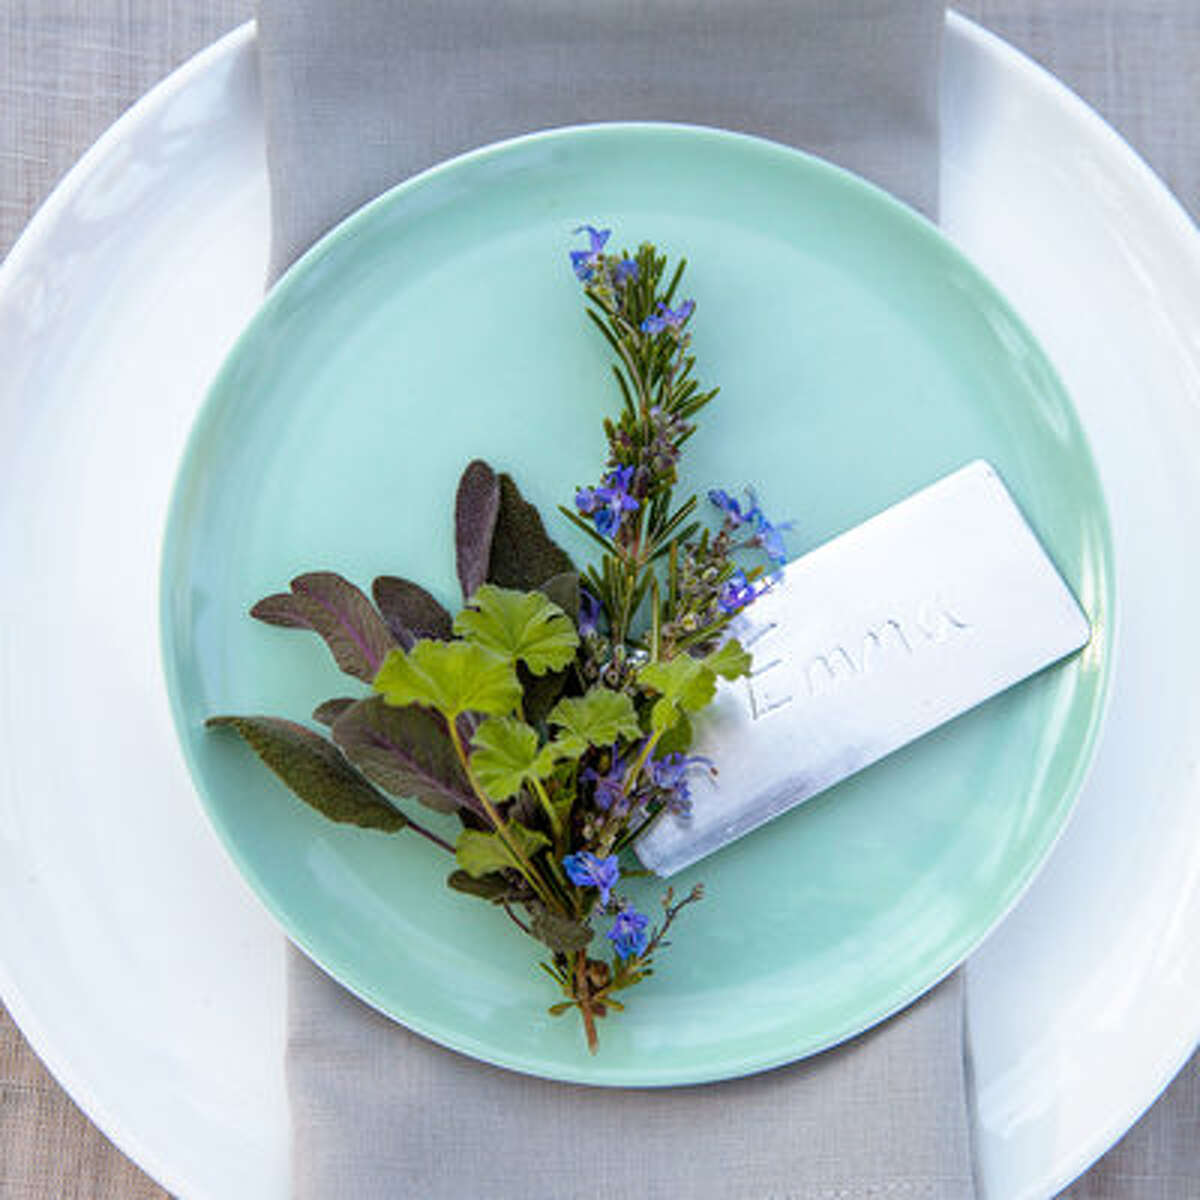 Freshen up Etch each guest's name on a metal plant tag with a pen tip, then wind the tag's wire around a cluster of rosemary, purple sage, and scented geranium leaves. cb2.com for Belay celery green salad plates.